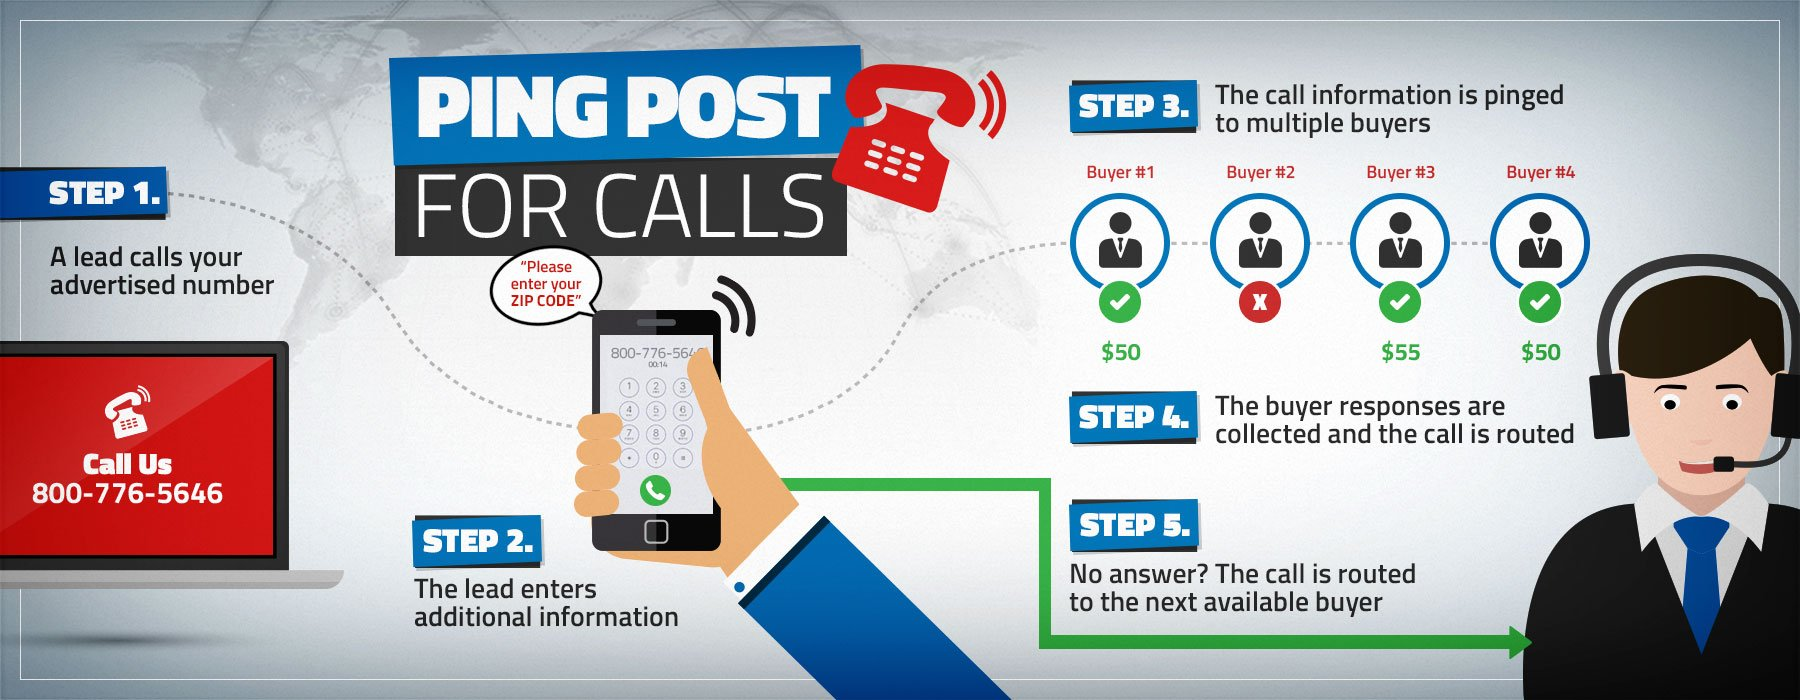 ping post for calls